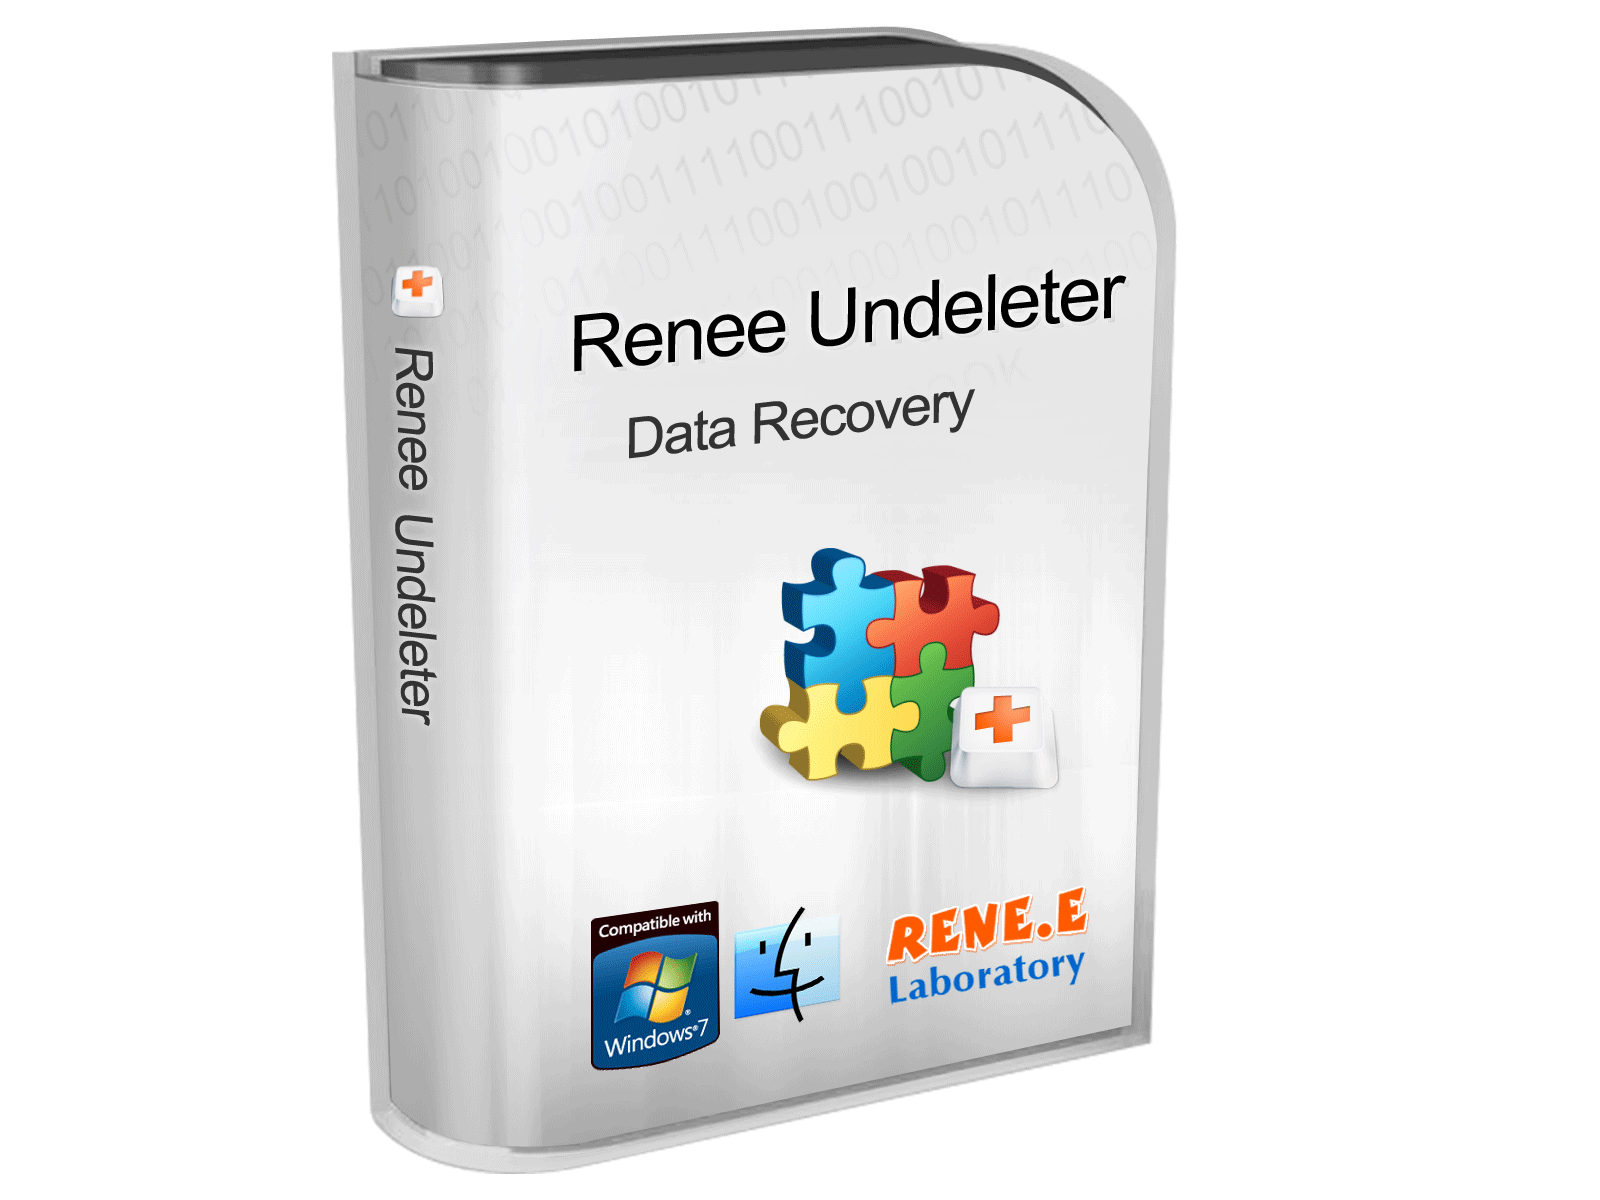 Renee Undeleter software